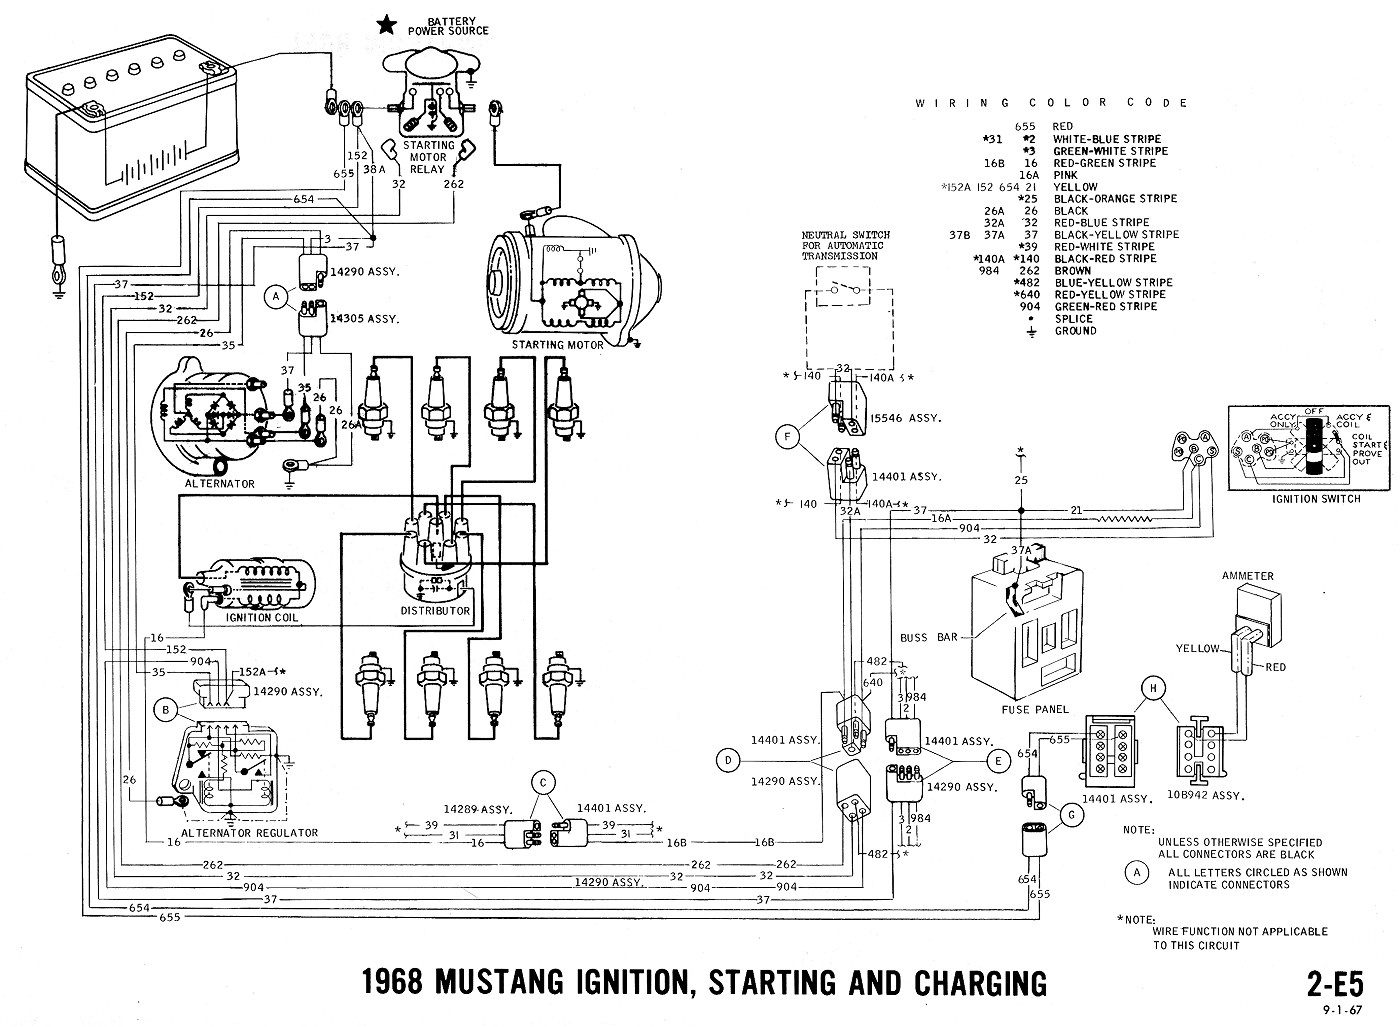 Wiring Diagram For 1987 Mustang Gt Ford Forum Data Nissan Tiida 2003 Alternator Along With Automotive Schematics Simple Schema